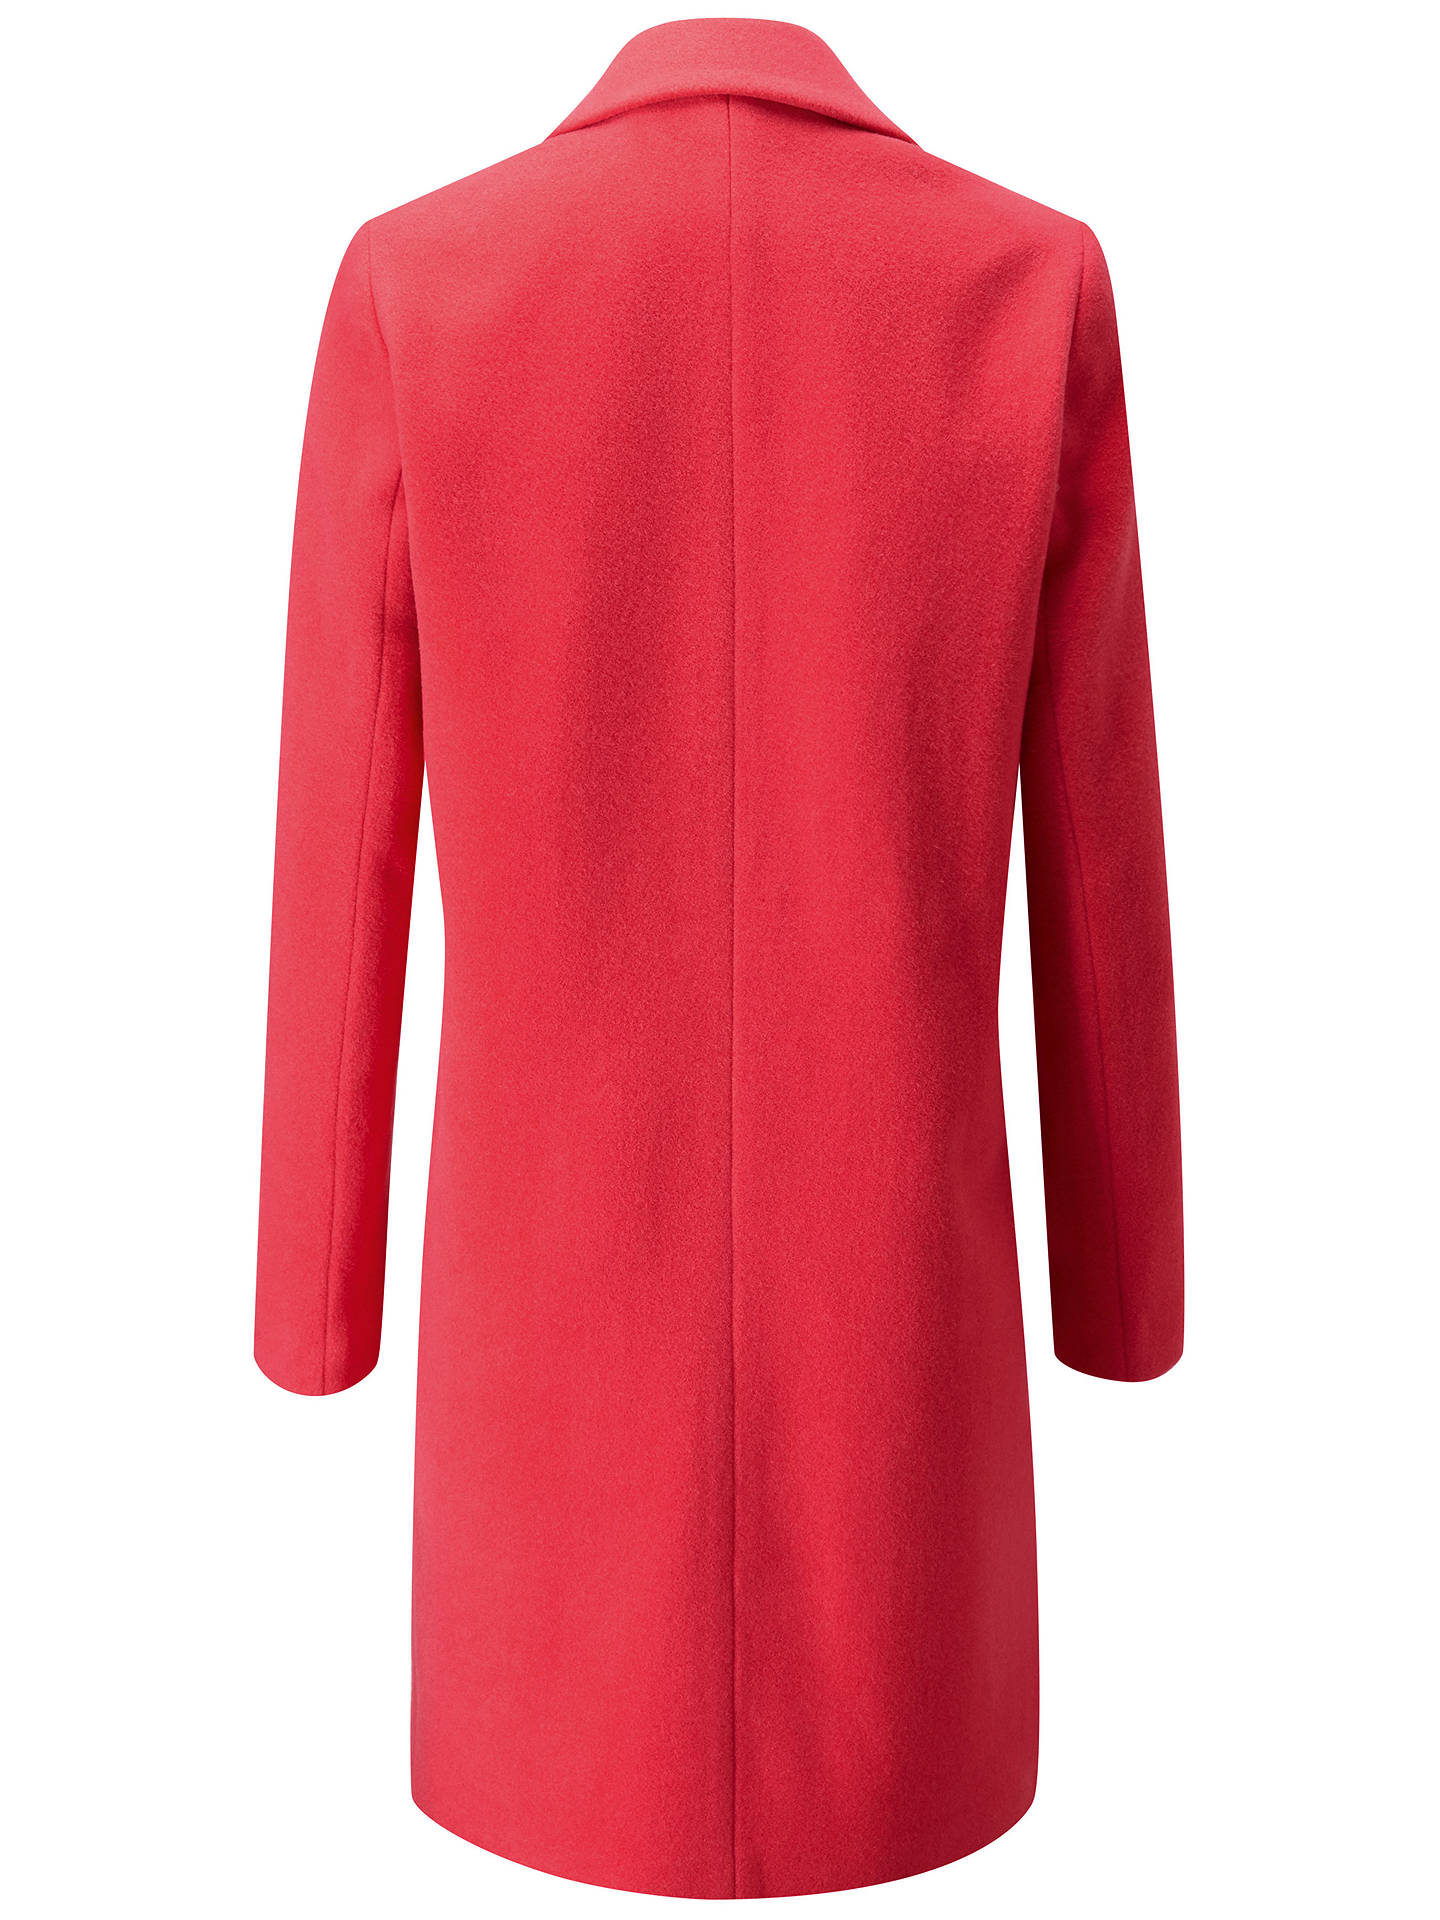 47c29f5efe Pure Collection Wool Single Breasted Coat, Coral at John Lewis ...